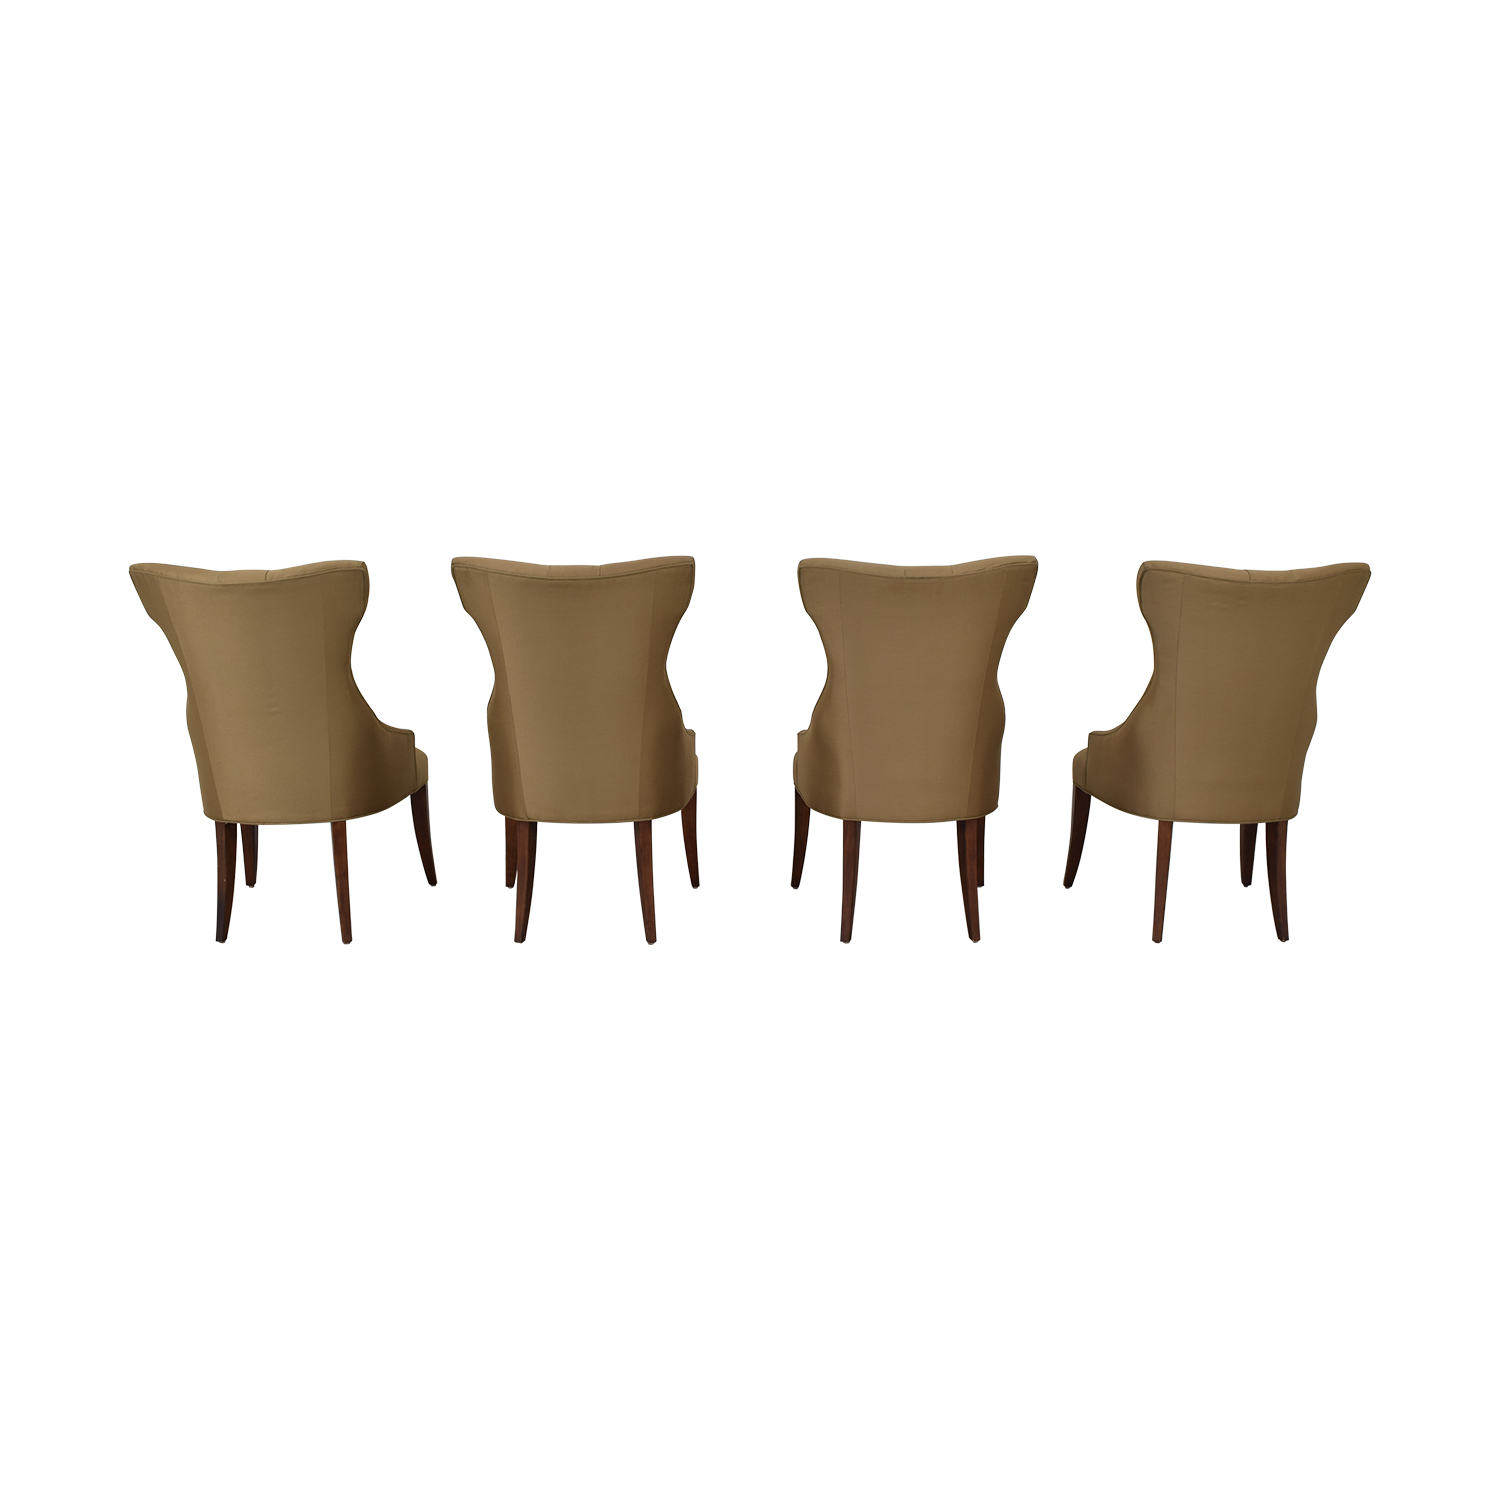 Bernhardt Bernhardt Gray Deco Dining Chairs on sale